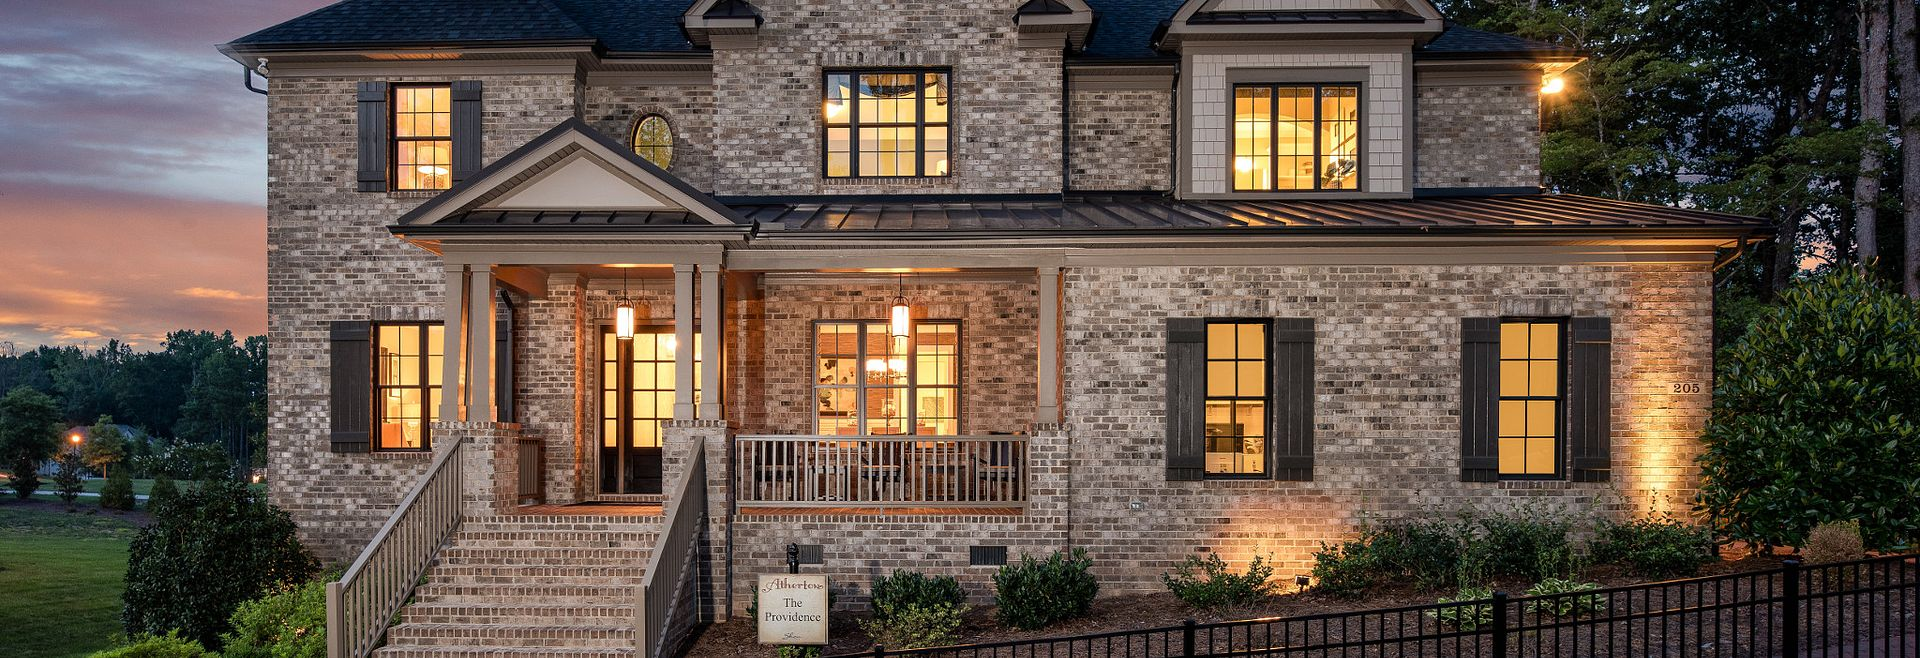 Atherton by Shea Homes in Weddington, NC